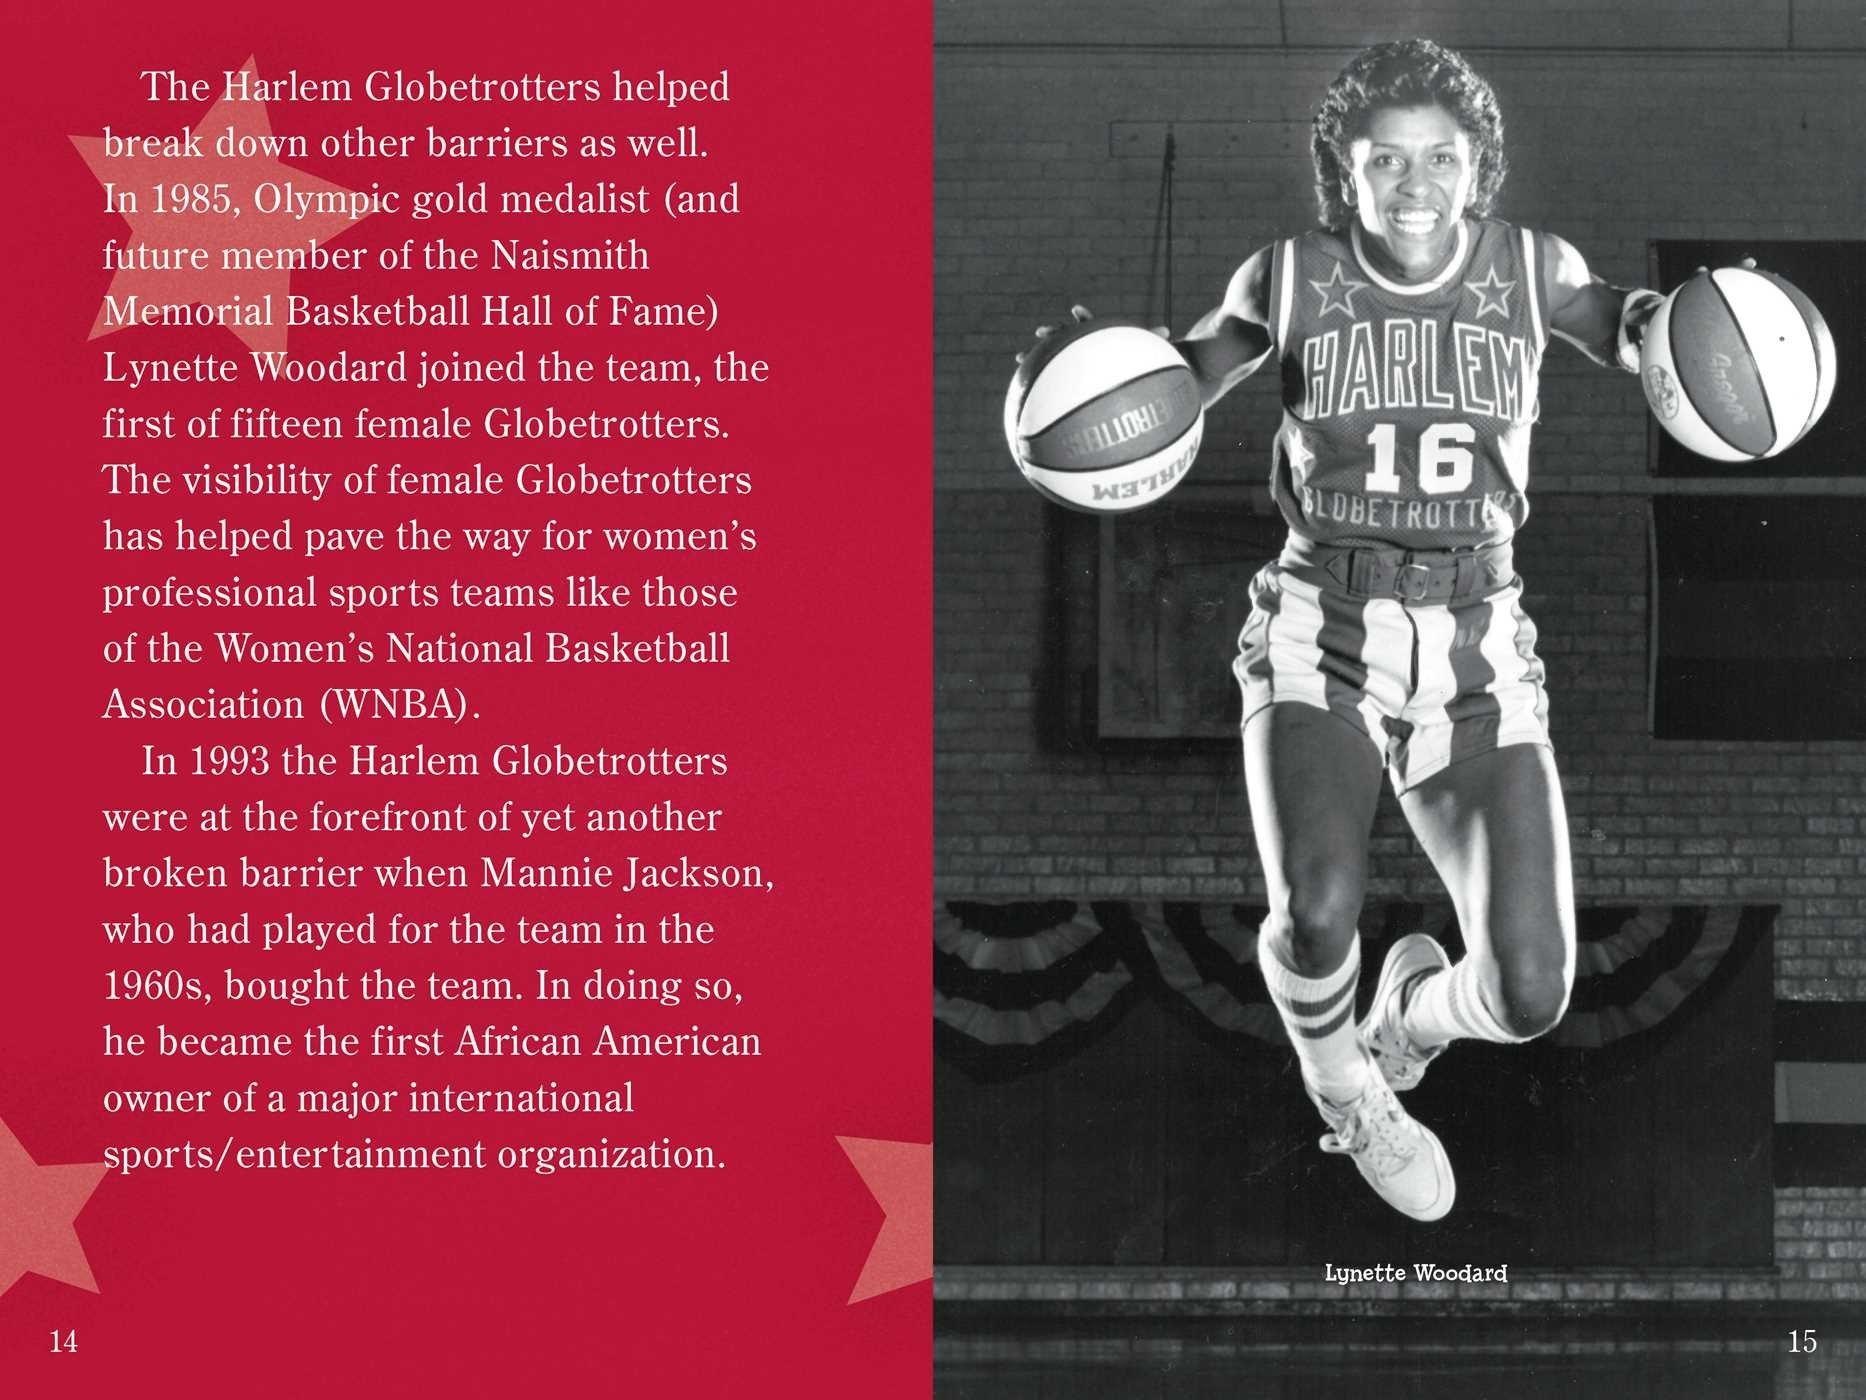 The superstar story of the harlem globetrotters 9781481487481.in05